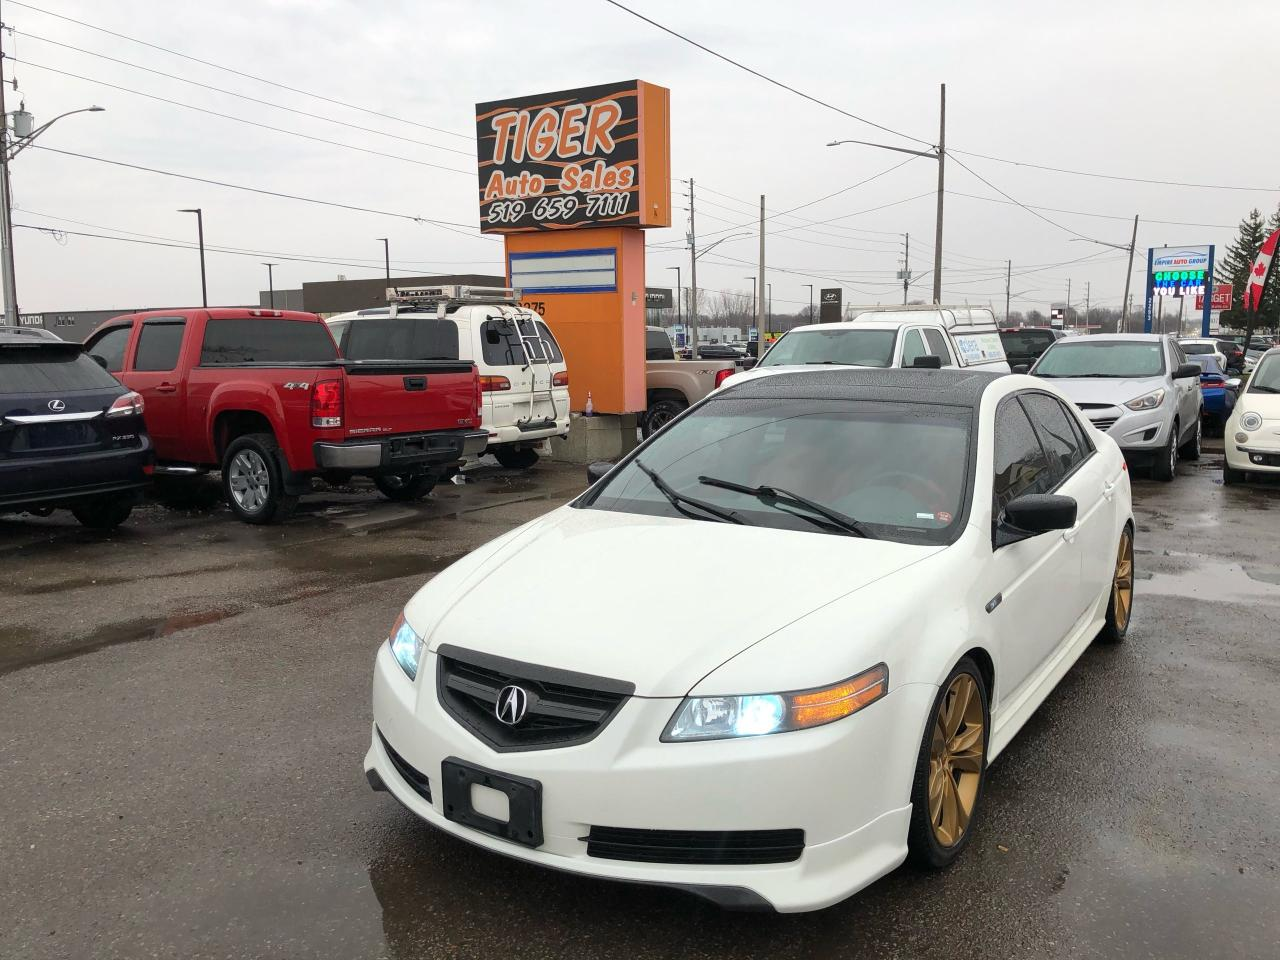 used 2005 acura tl red leather sub